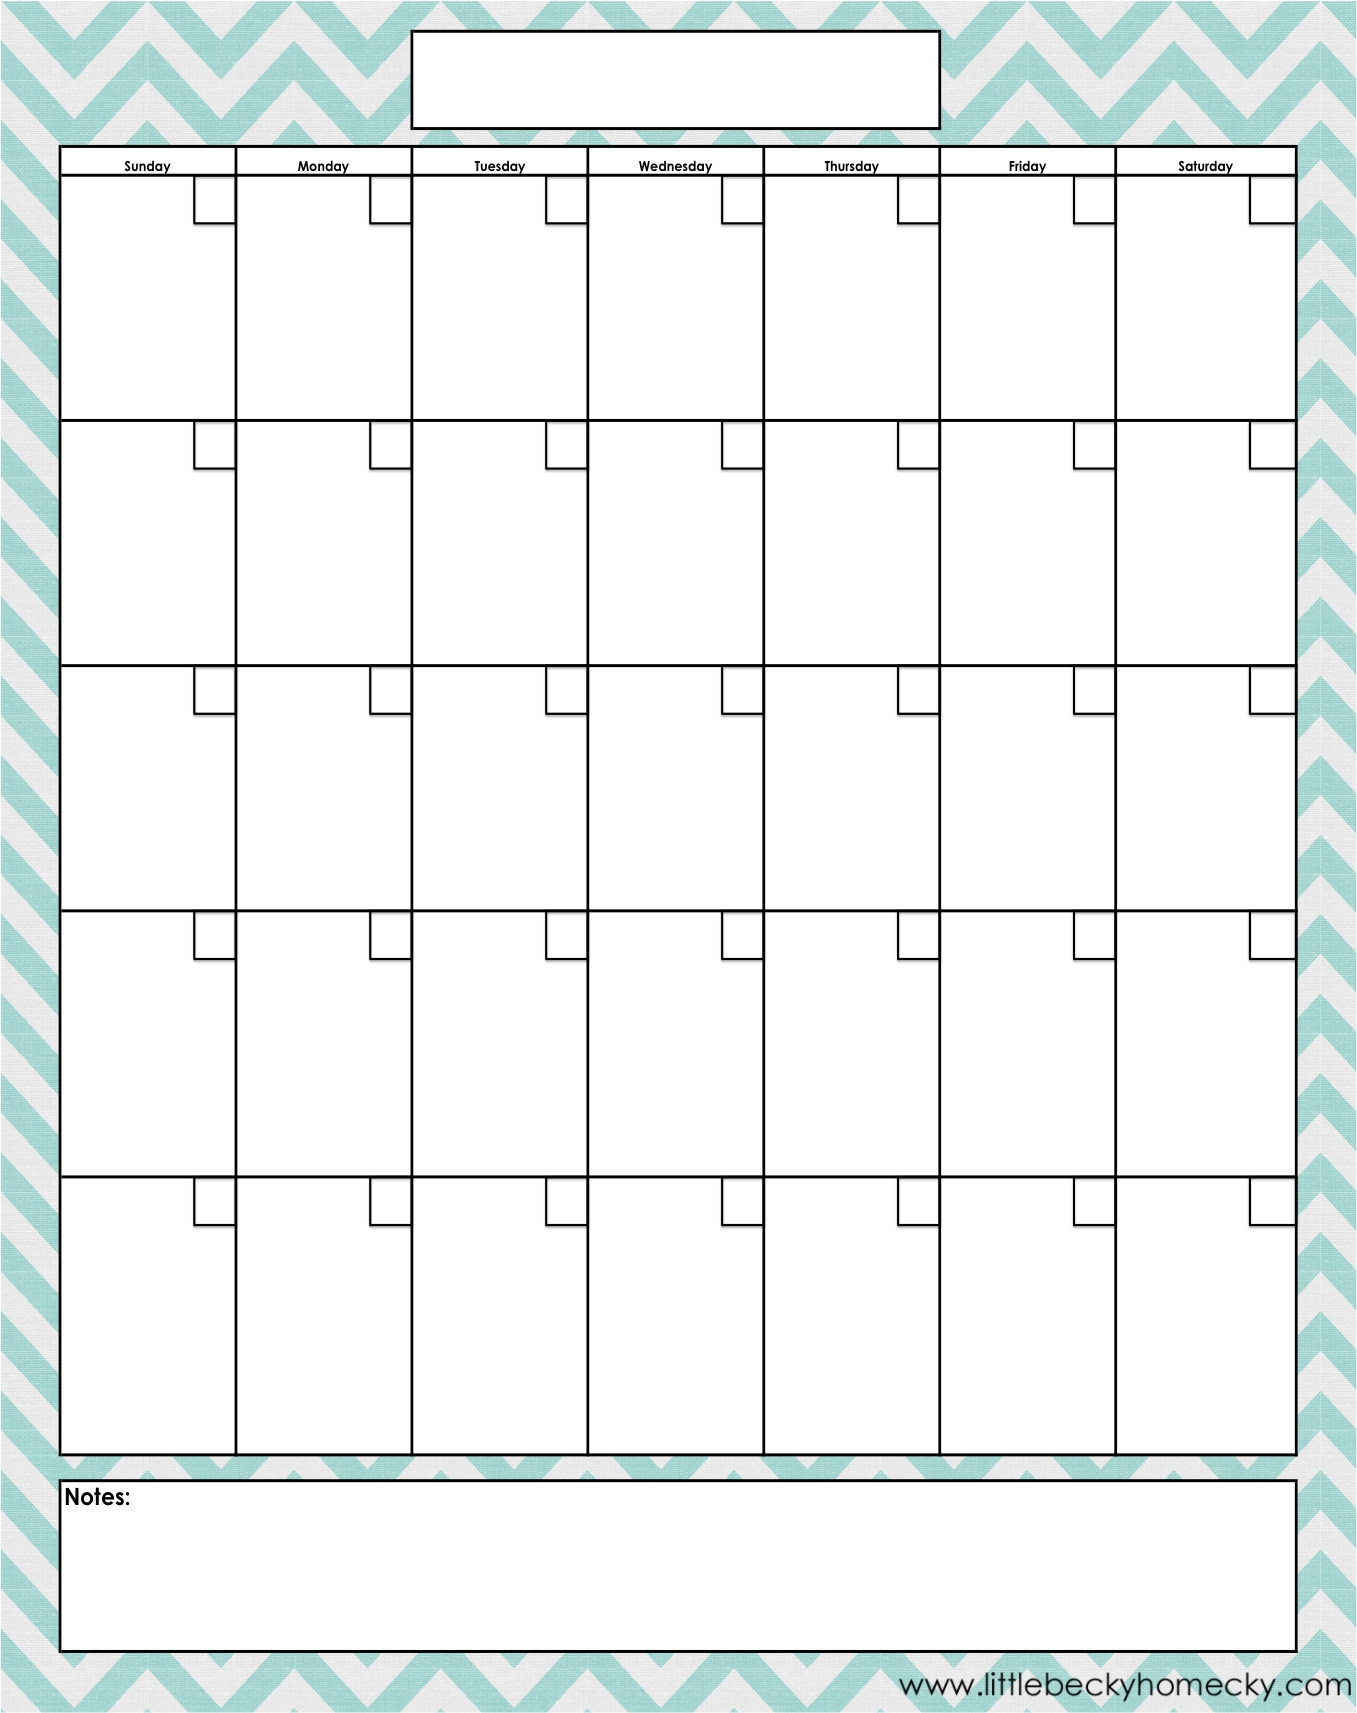 Monthly Calendar Printable 2017 Calendar With Holidays